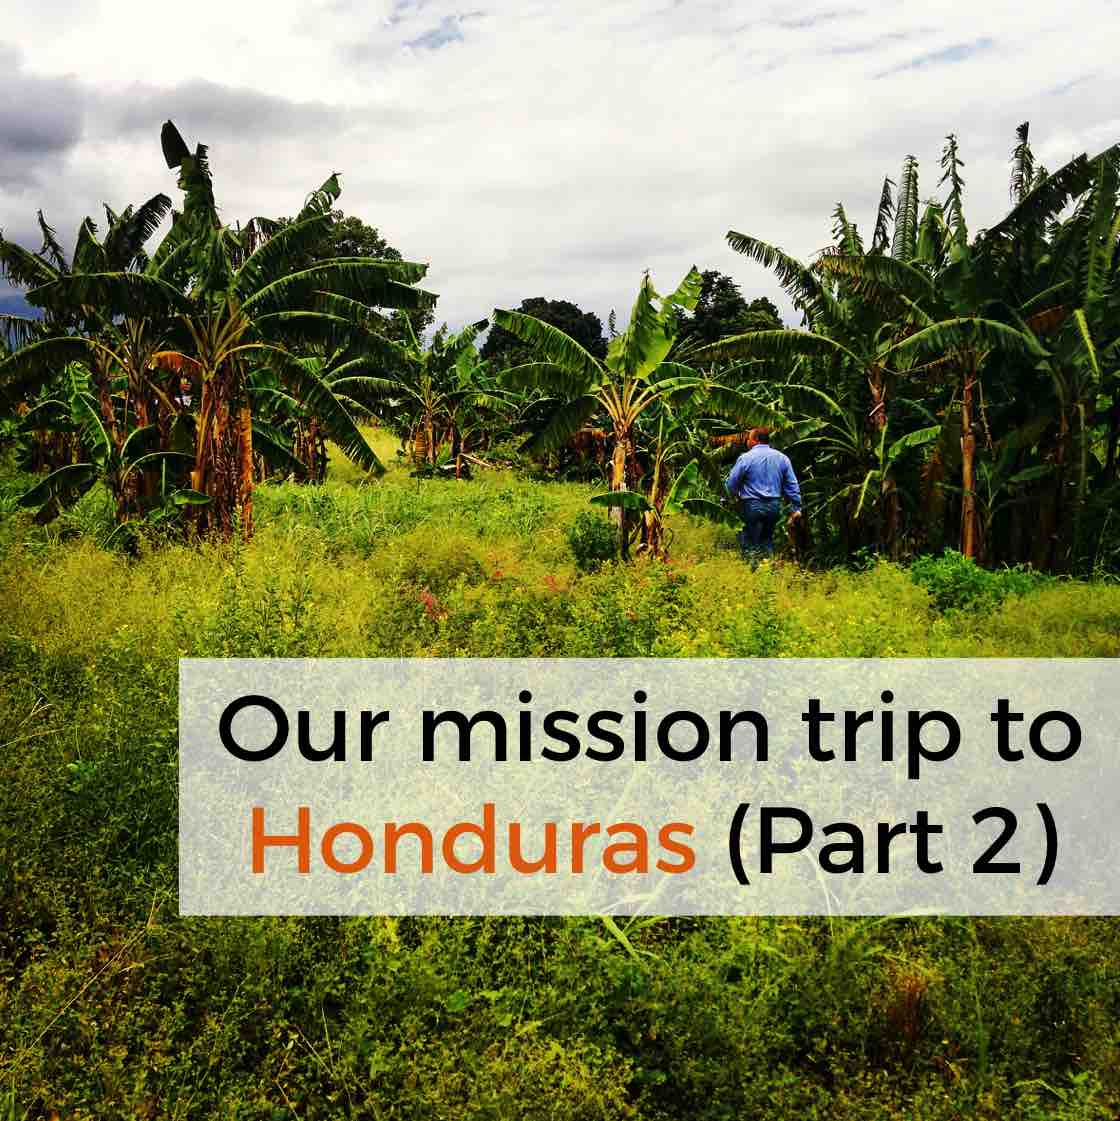 Episode 33: Our mission trip to Honduras (Part 2)